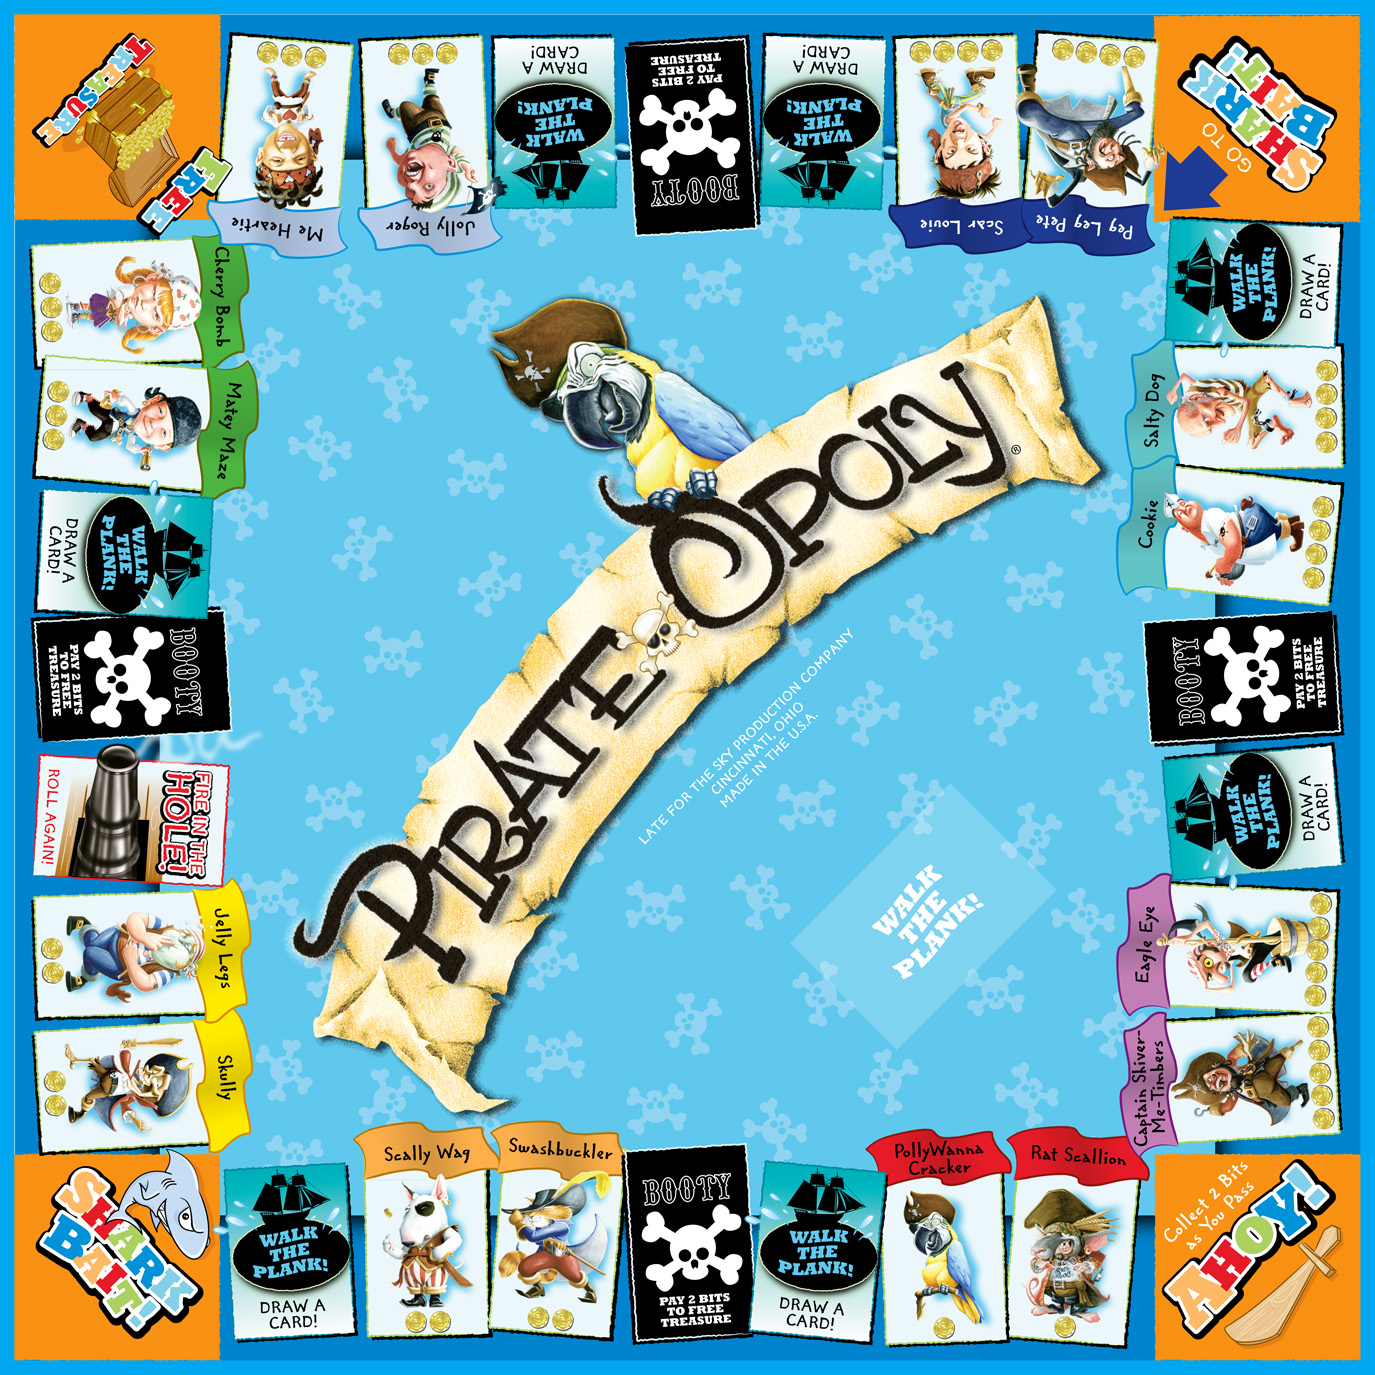 PIRATE-OPOLY Board Game